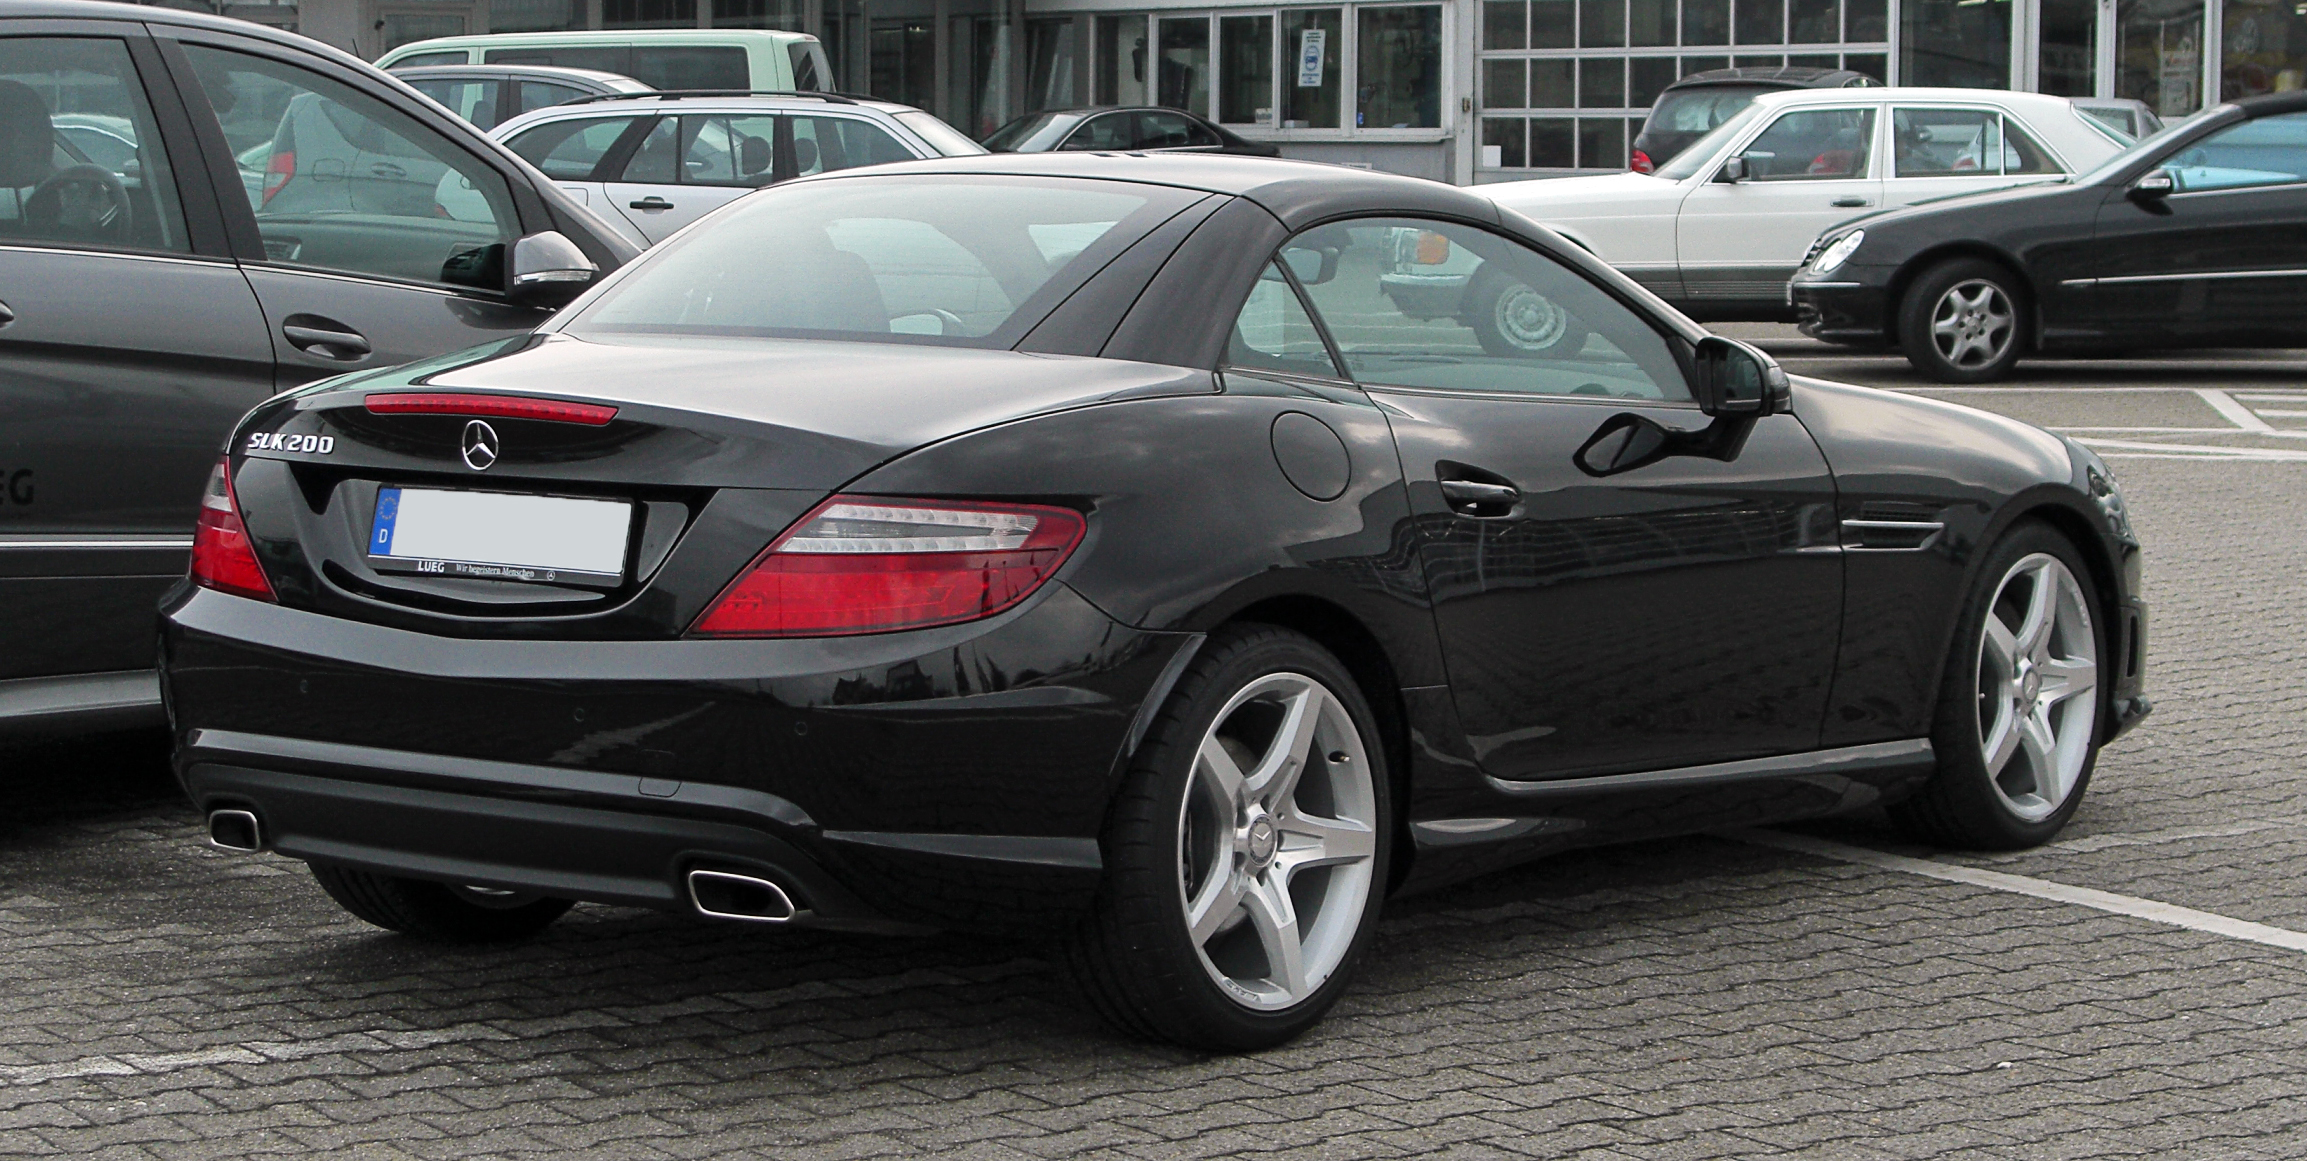 file mercedes benz slk 200 blueefficiency sport paket amg r 172 heckansicht 1 april 2011. Black Bedroom Furniture Sets. Home Design Ideas